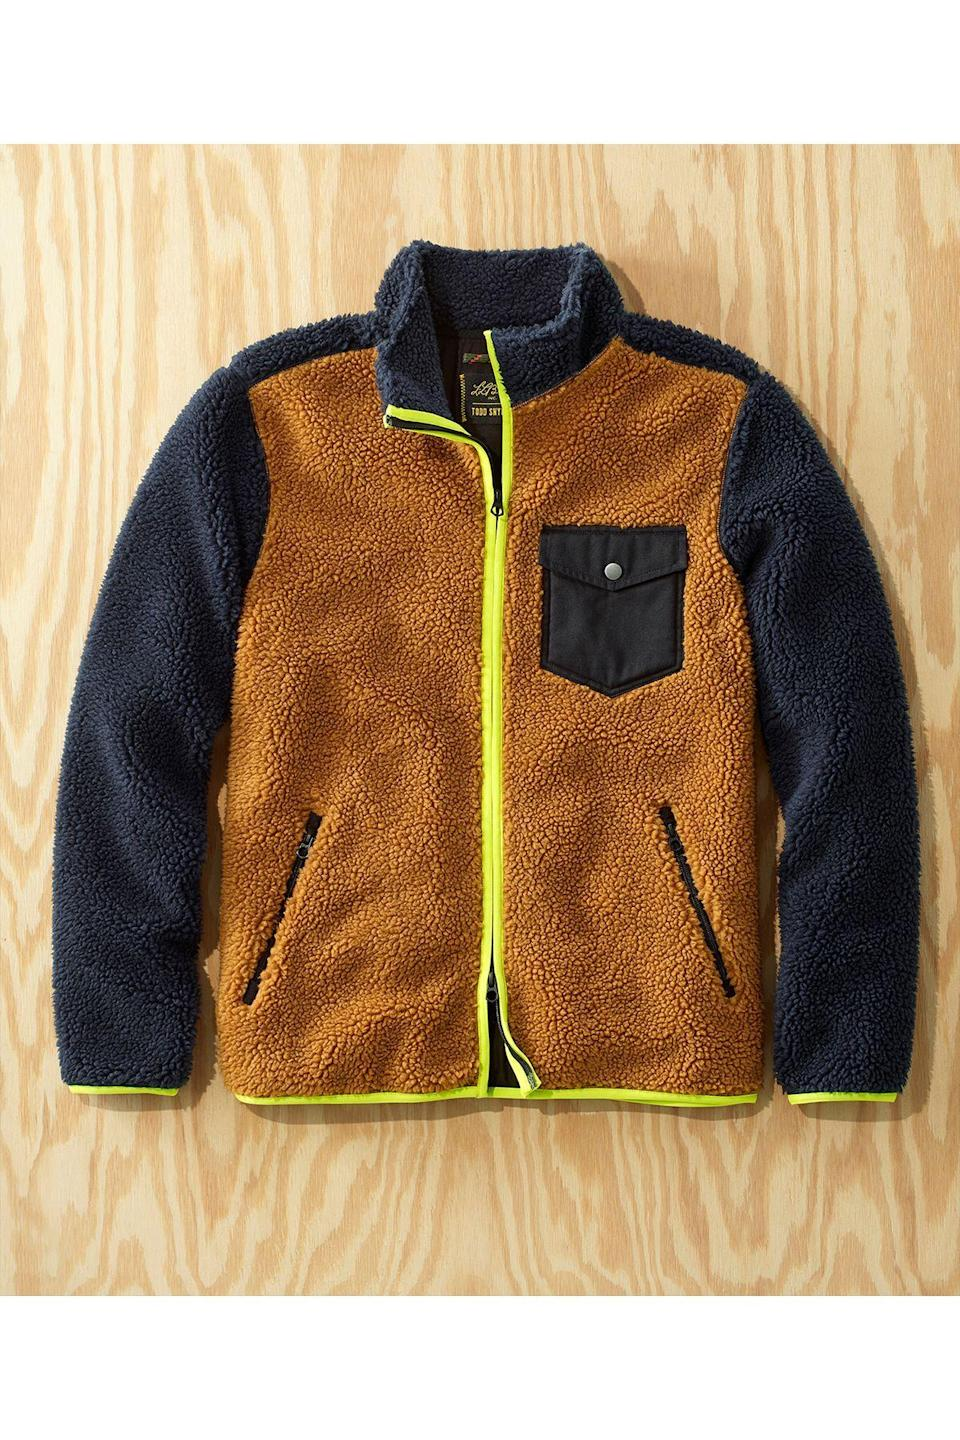 """<p><strong>L.L.Bean x Todd Snyder</strong></p><p>toddsnyder.com</p><p><strong>$149.00</strong></p><p><a href=""""https://go.redirectingat.com?id=74968X1596630&url=https%3A%2F%2Fwww.toddsnyder.com%2Fcollections%2Fl-l-bean-x-todd-snyder-three%2Fproducts%2Fllb-x-ts-hi-pile-sherpa-shirt-jacket-full-zip-navy-1&sref=https%3A%2F%2Fwww.townandcountrymag.com%2Fstyle%2Fmens-fashion%2Fg34524507%2Ftodd-snyder-and-ll-bean-collaboration%2F"""" rel=""""nofollow noopener"""" target=""""_blank"""" data-ylk=""""slk:Shop Now"""" class=""""link rapid-noclick-resp"""">Shop Now</a></p>"""